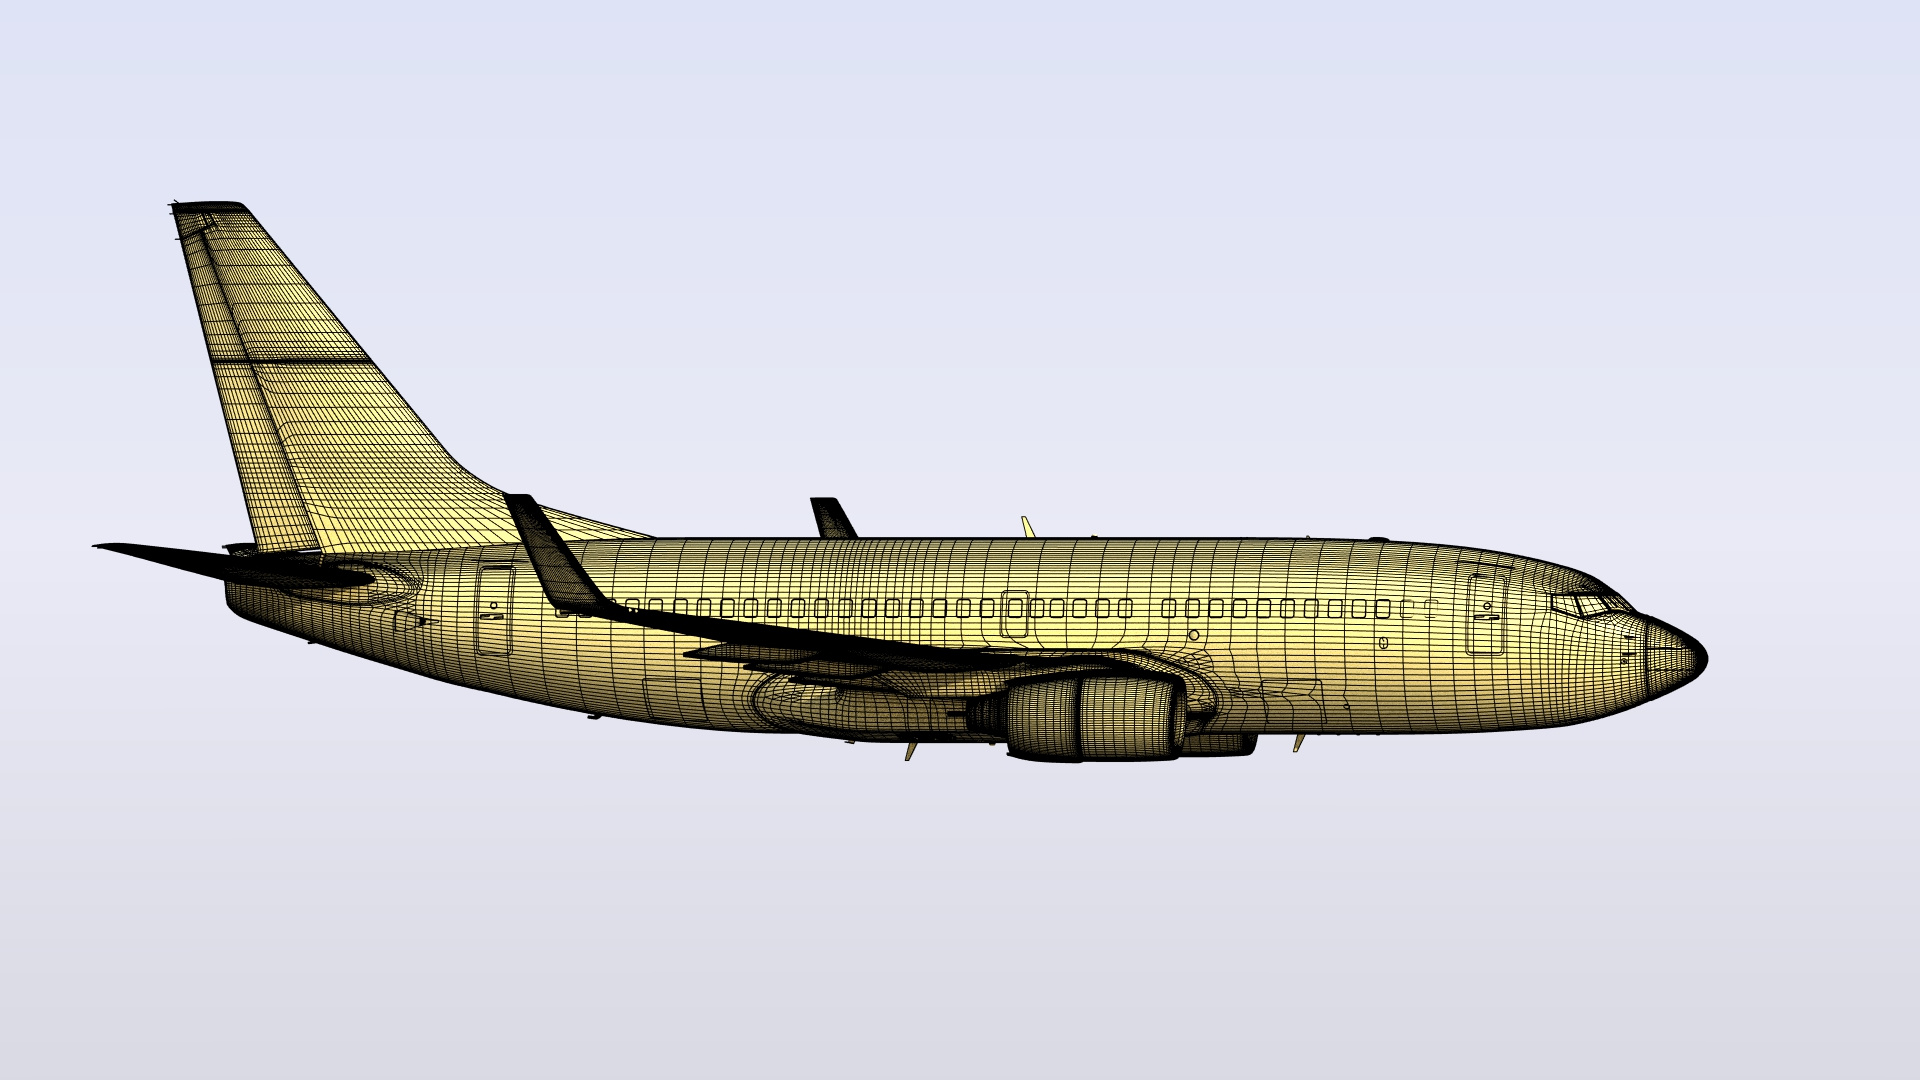 Boeing 737-700 in LightWave 3D [Cat]